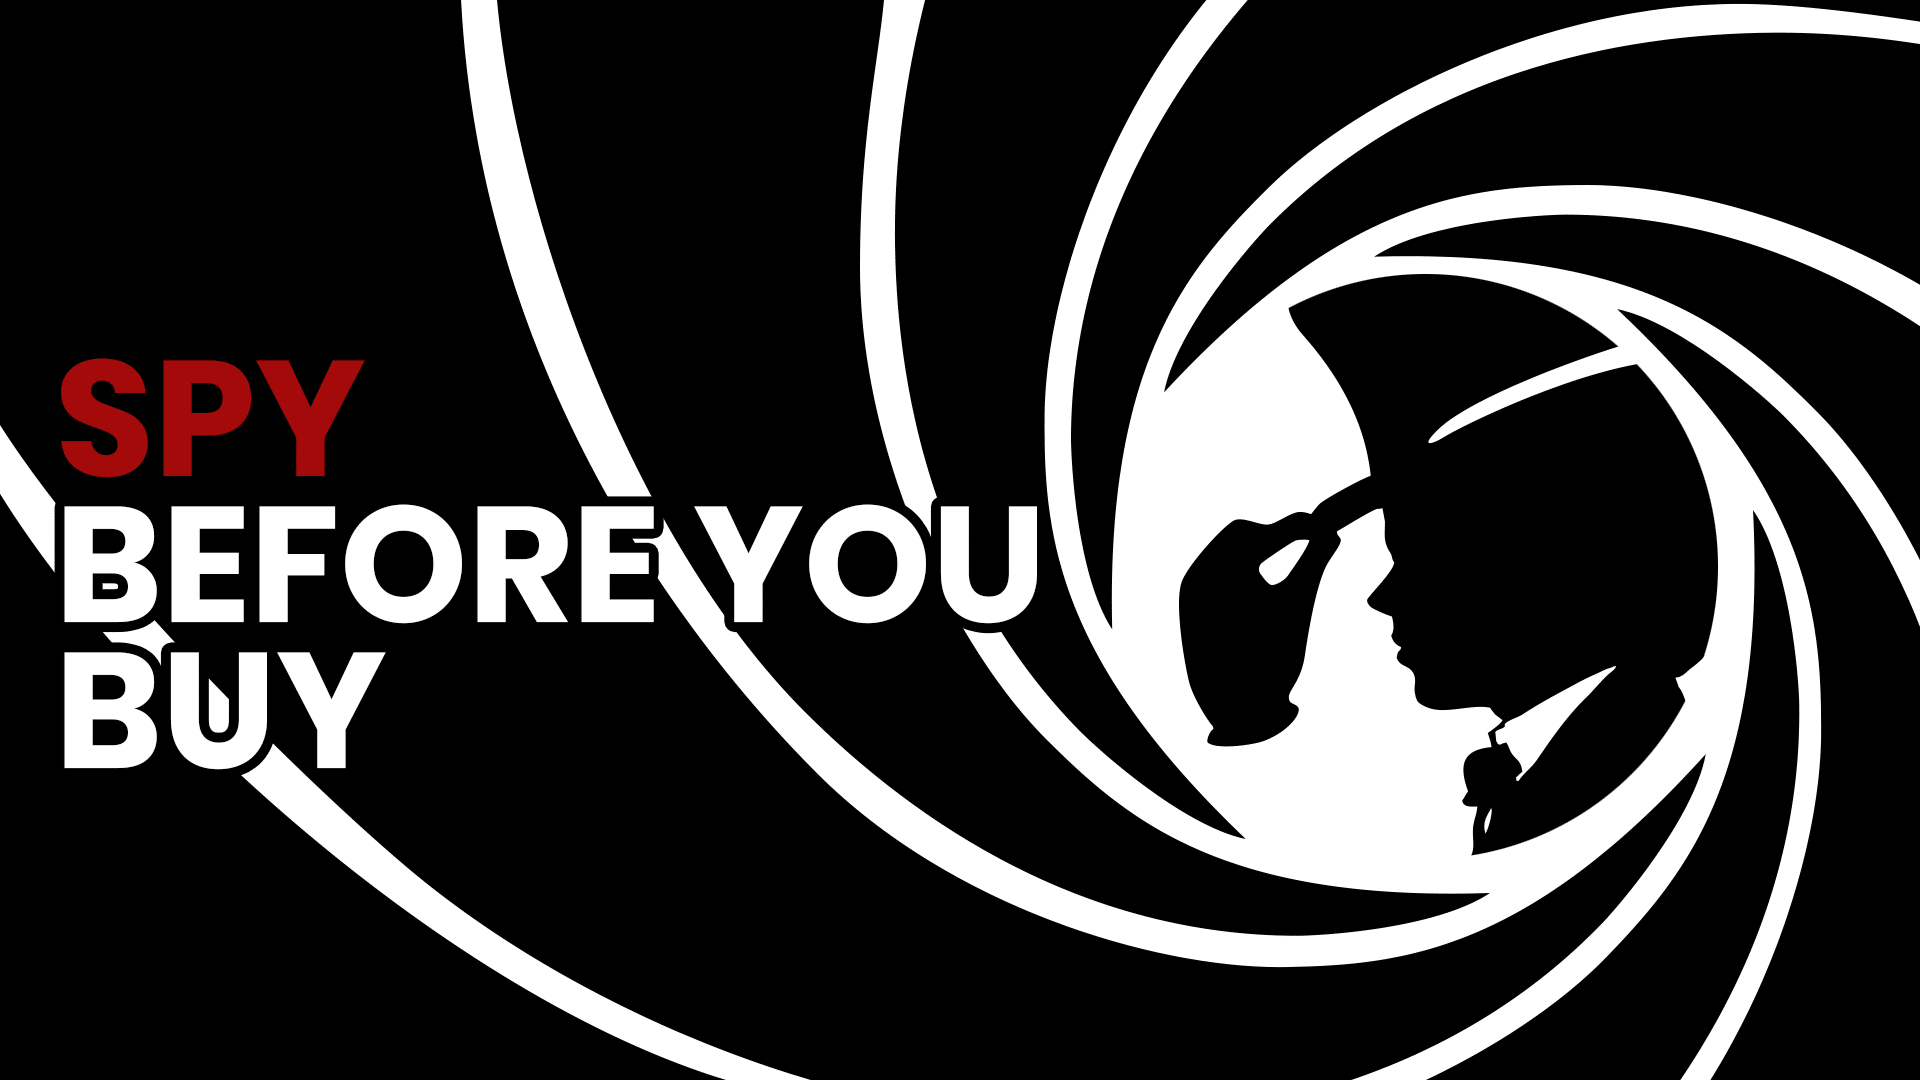 Spy Before You Buy